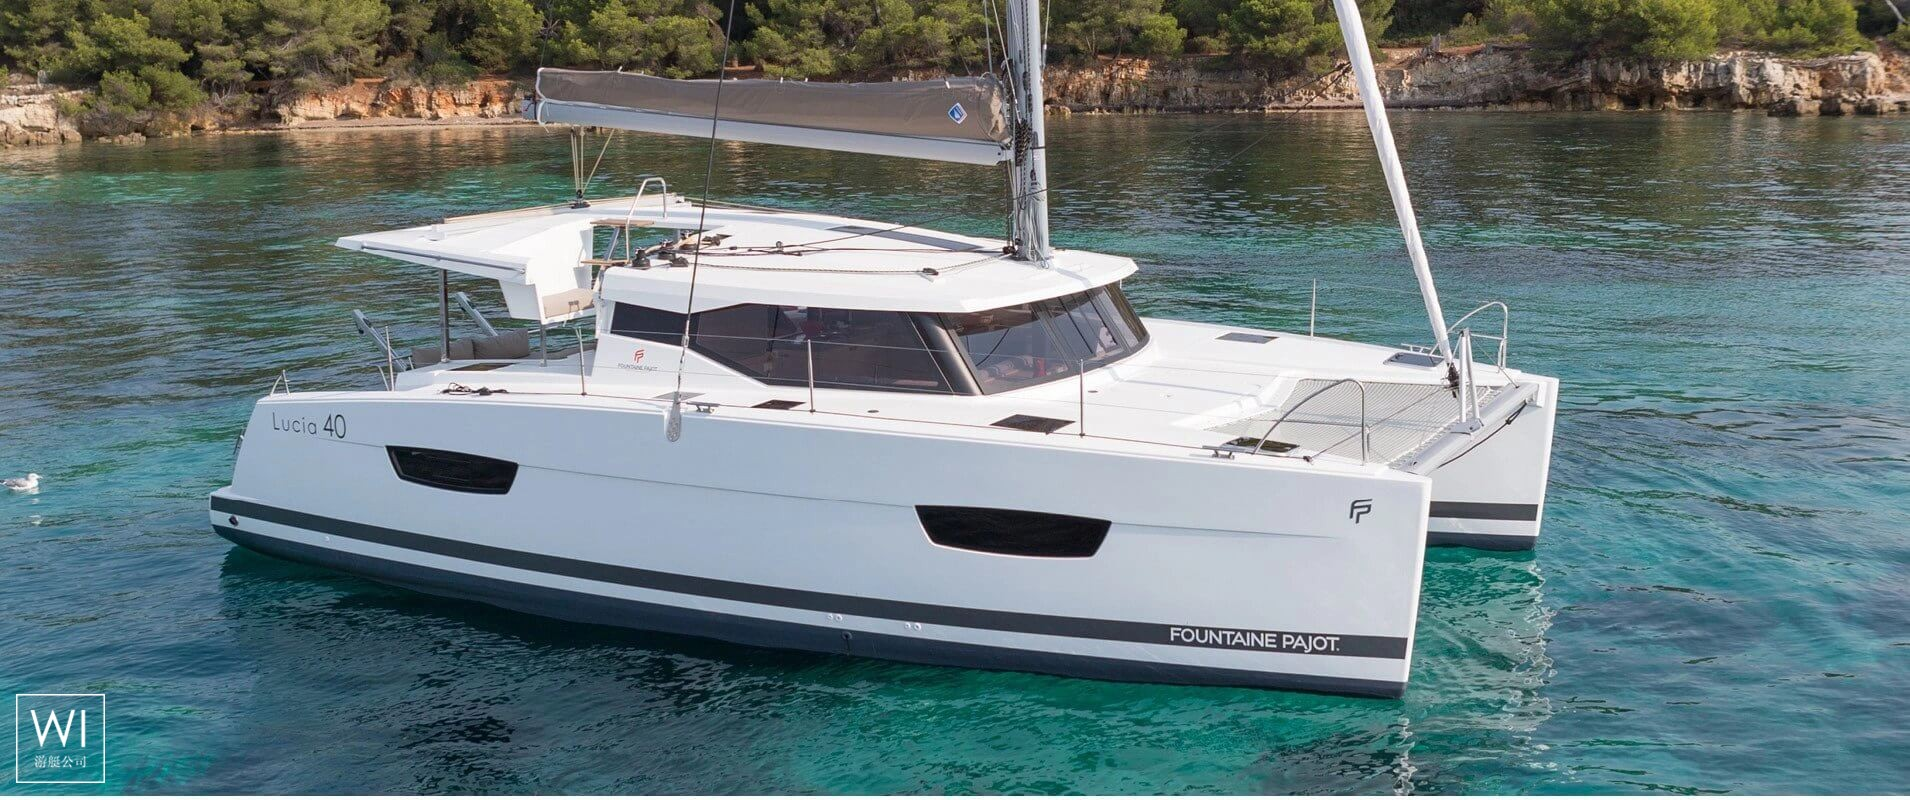 Lucia 40 Owners Version Exterior 1